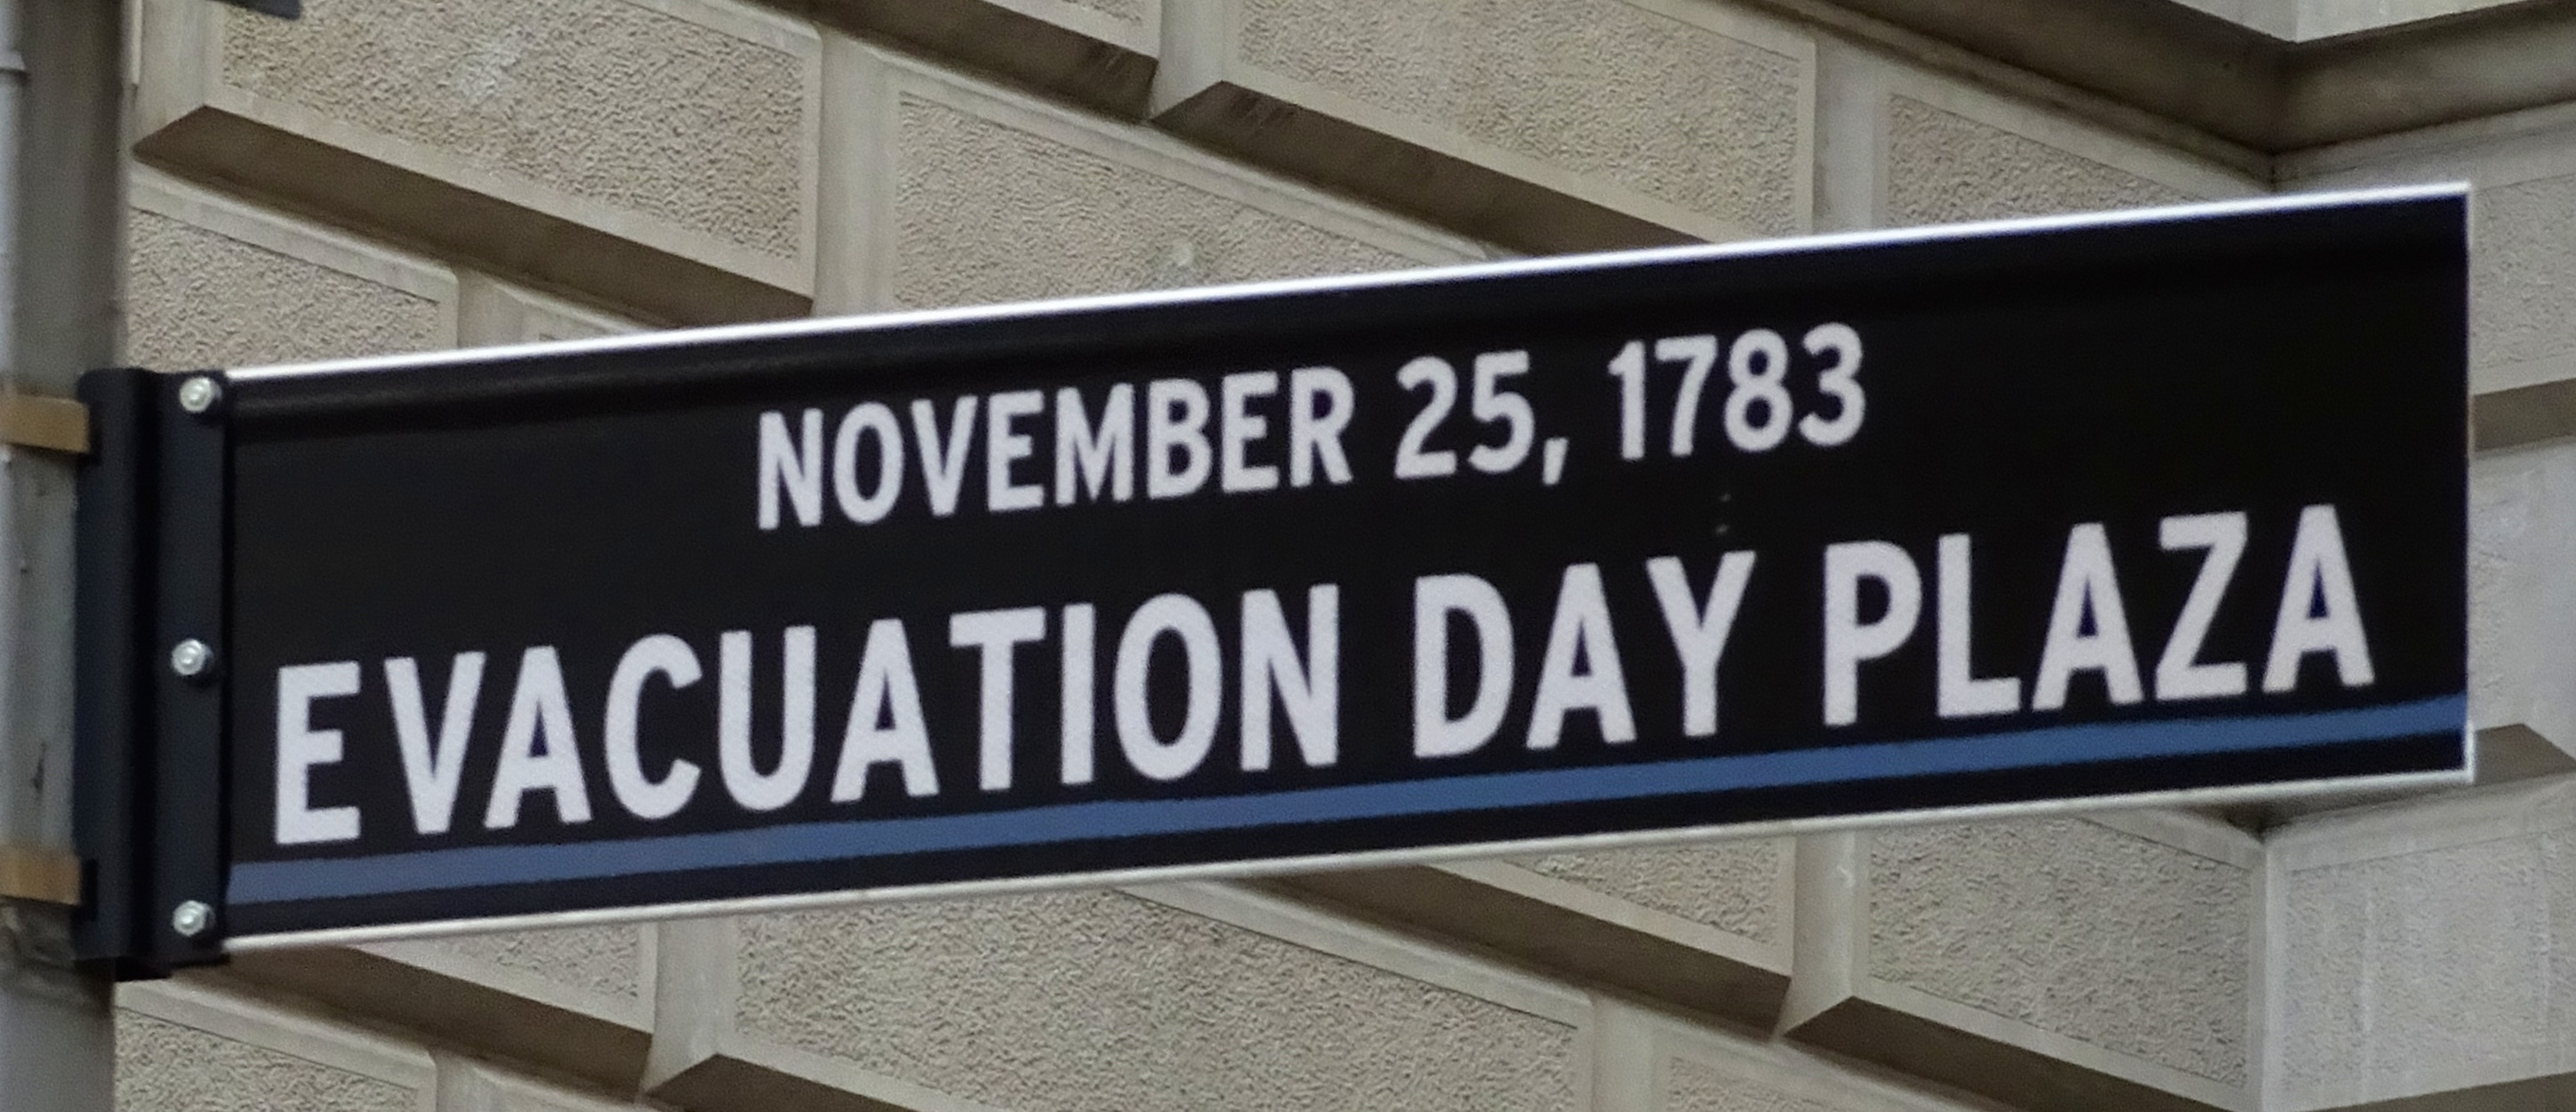 Evacuation Day Plaza street sign